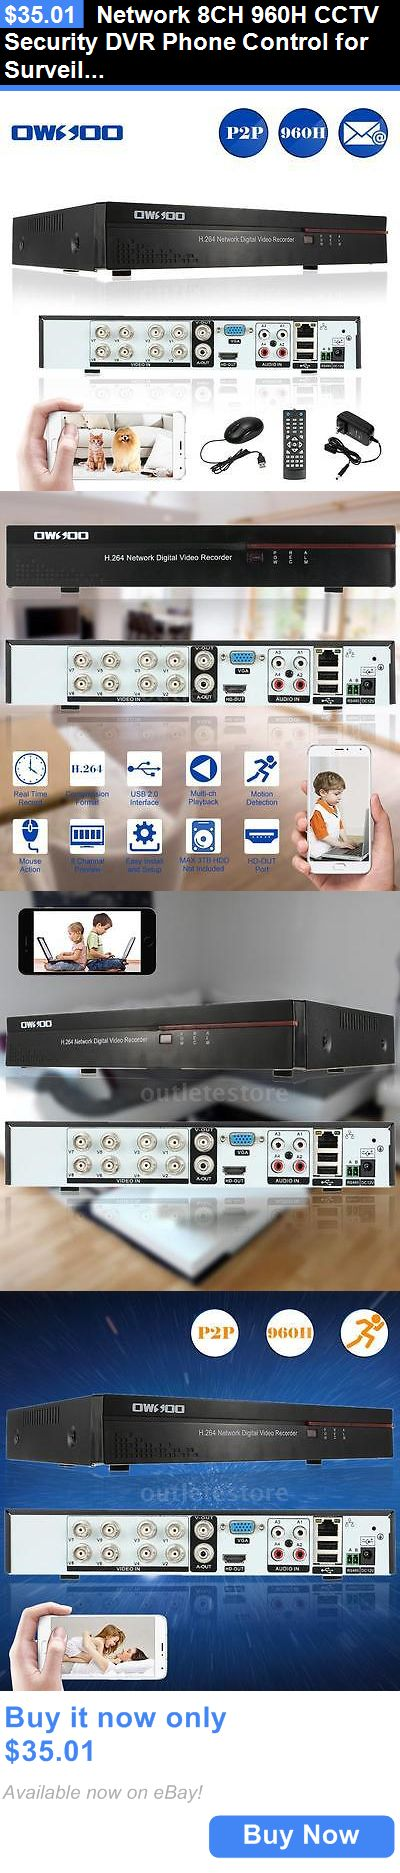 Digital Video Recorders Cards: Network 8Ch 960H Cctv Security Dvr Phone Control For Surveillance Camera Us V0v7 BUY IT NOW ONLY: $35.01